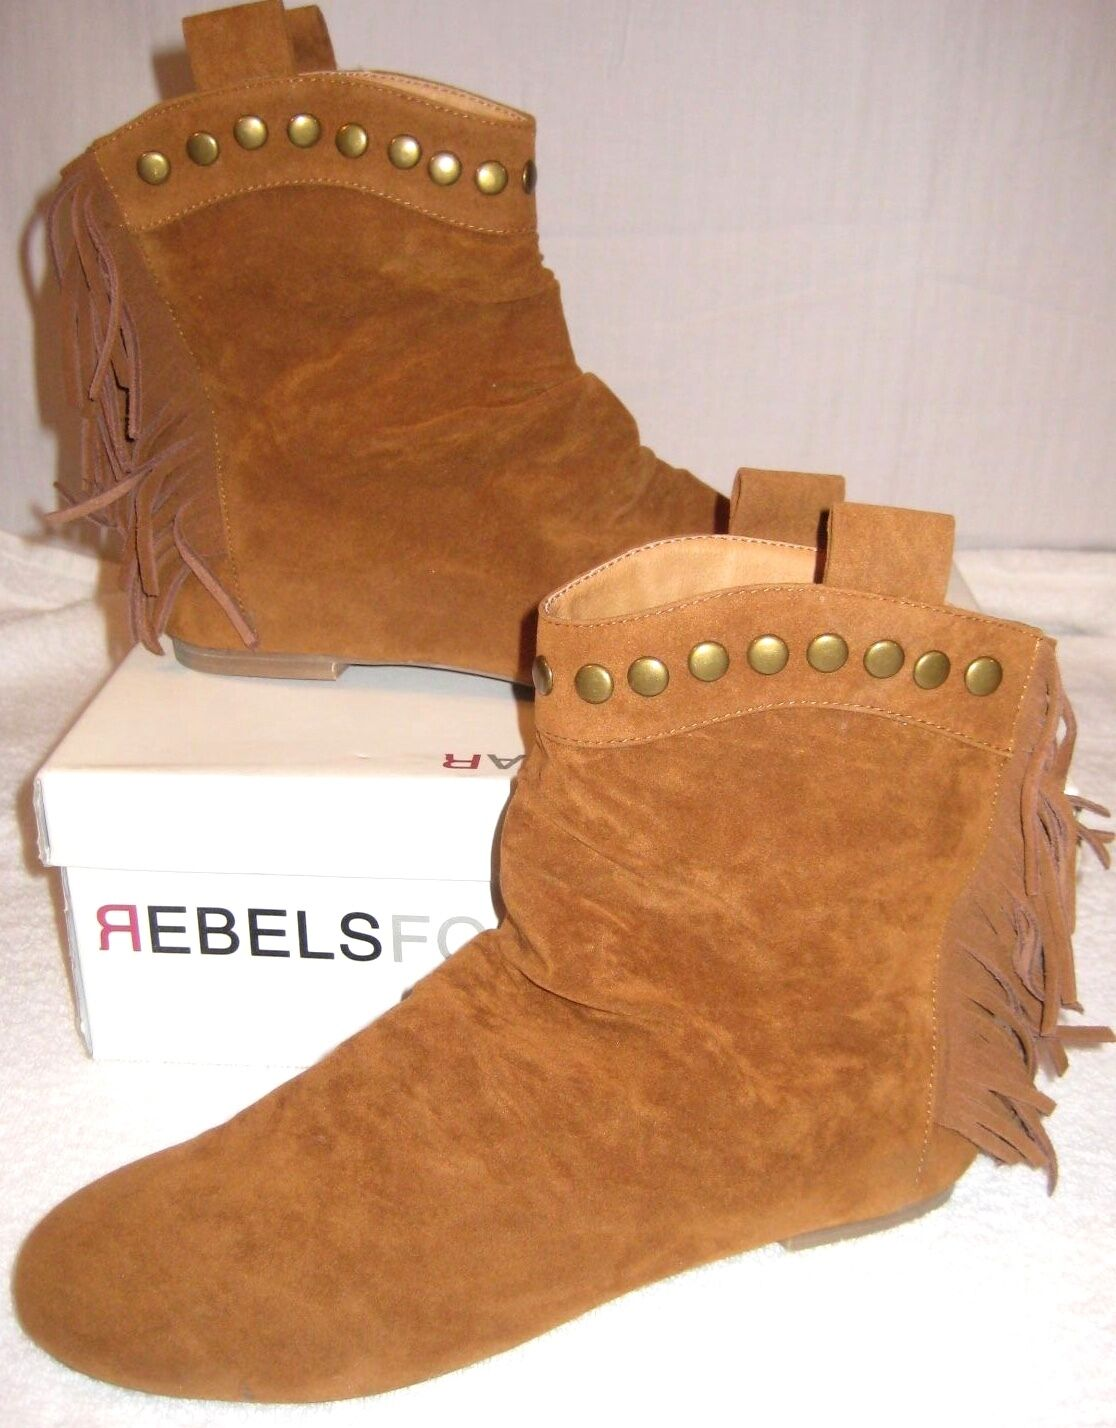 REBELS FOOTWEAR SALDANA FRINGE ANKLE BOOTIE  ~ BROWN TAN ~ SZ 8